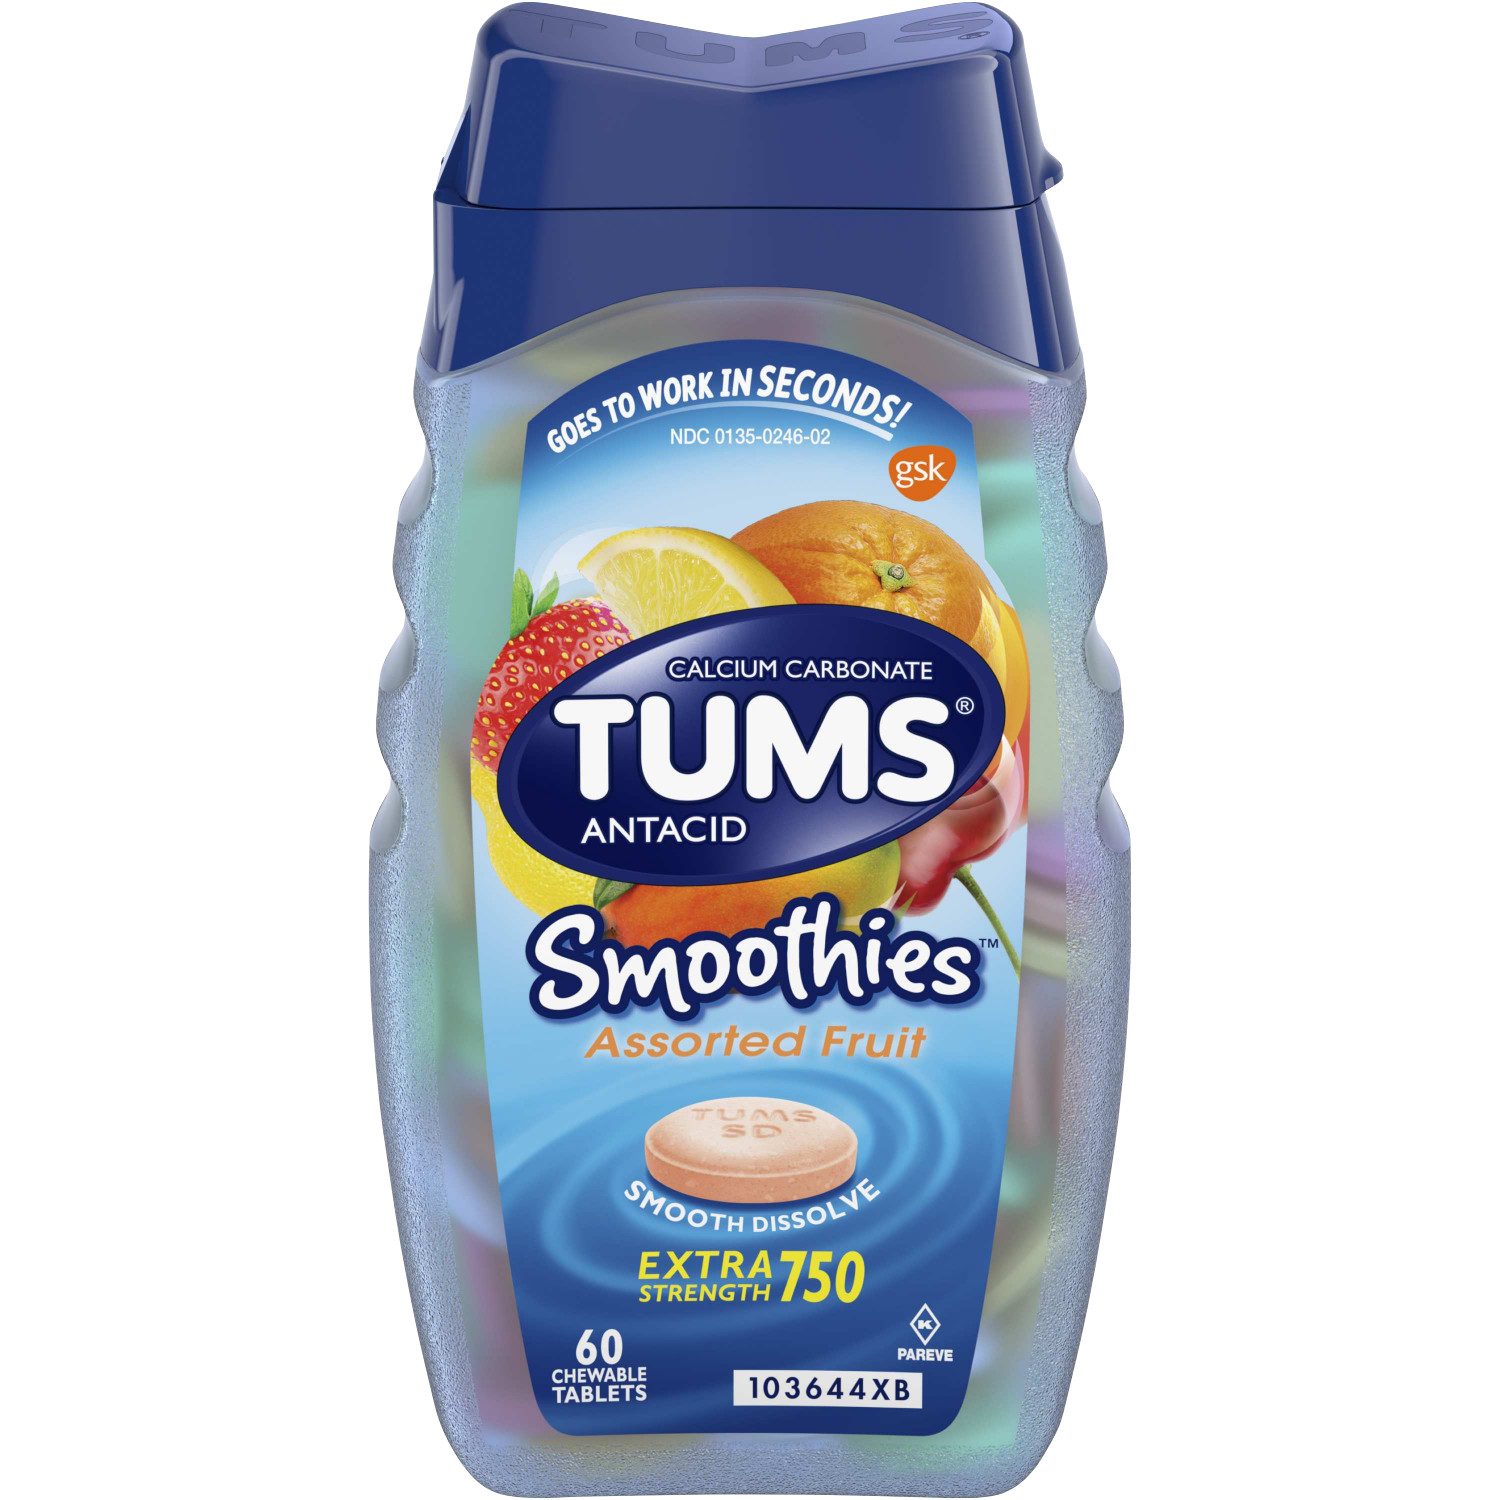 TUMS Antacid Chewable Tablets, Smoothies Assorted Fruit for Heartburn Relief, 60 count